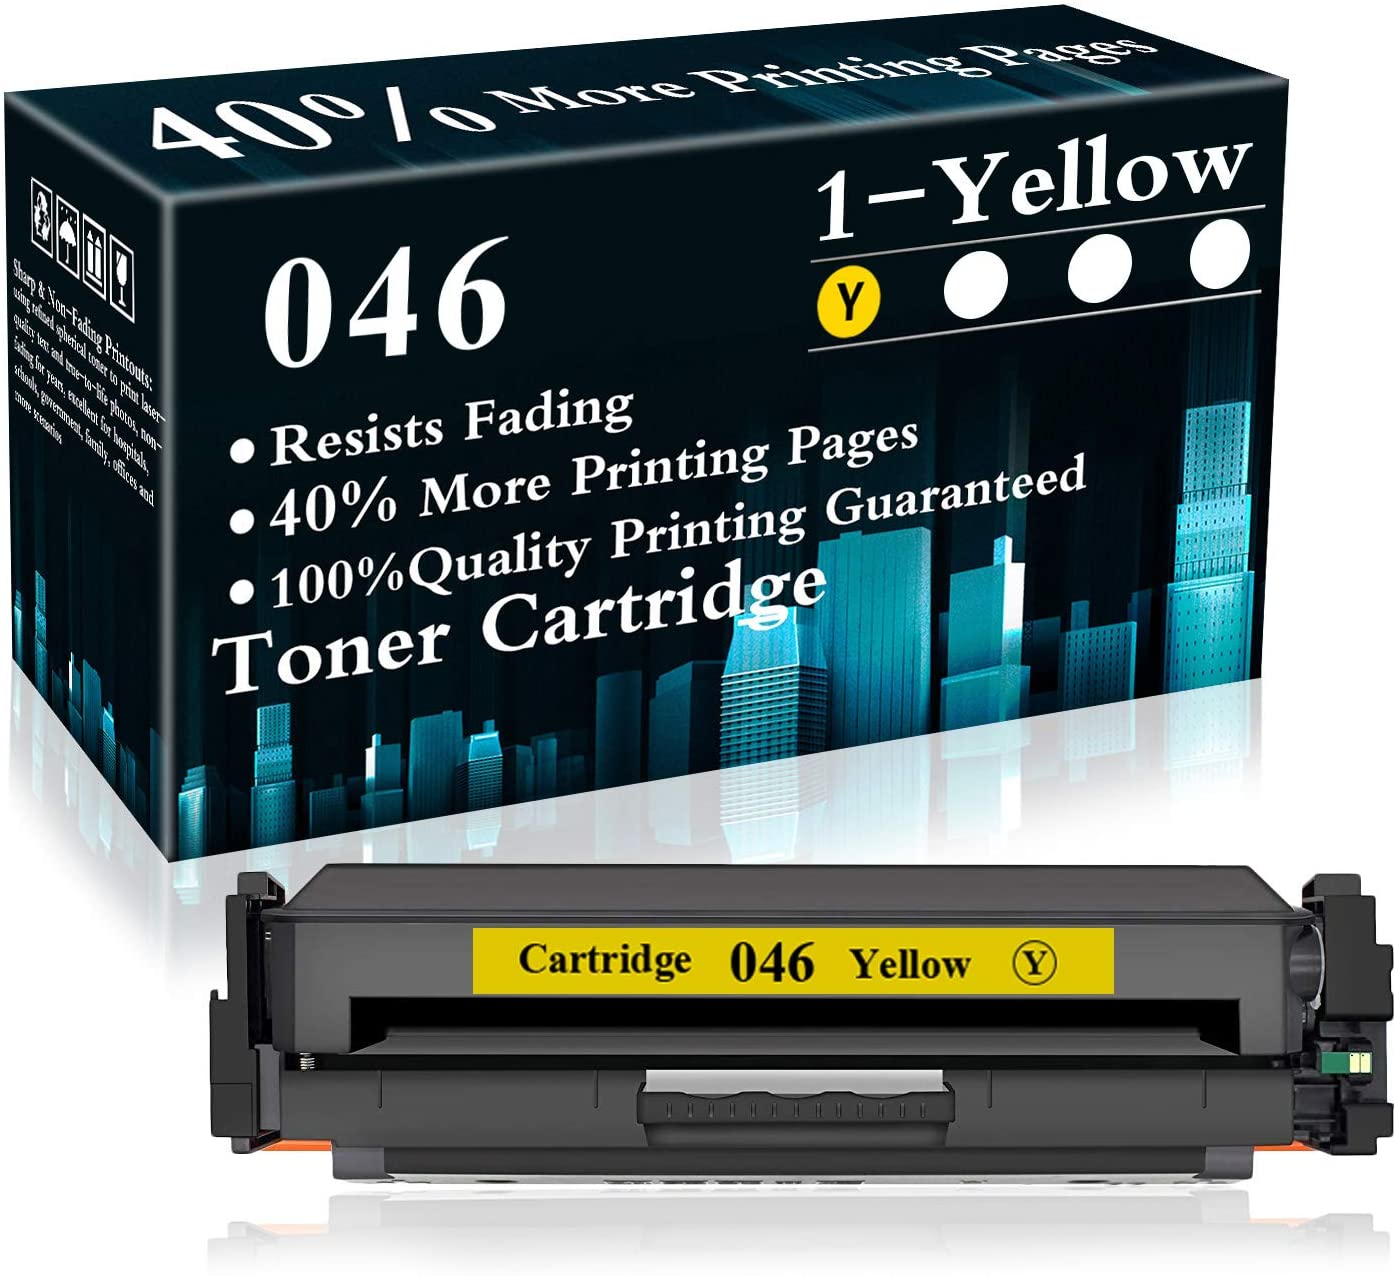 1 Pack Cartridge 046 Yellow Toner Cartridge Replacement for Canon Color Image Class LBP654Cdw MF735Cdw MF731Cdw MF733Cdw Printer,Sold by TopInk